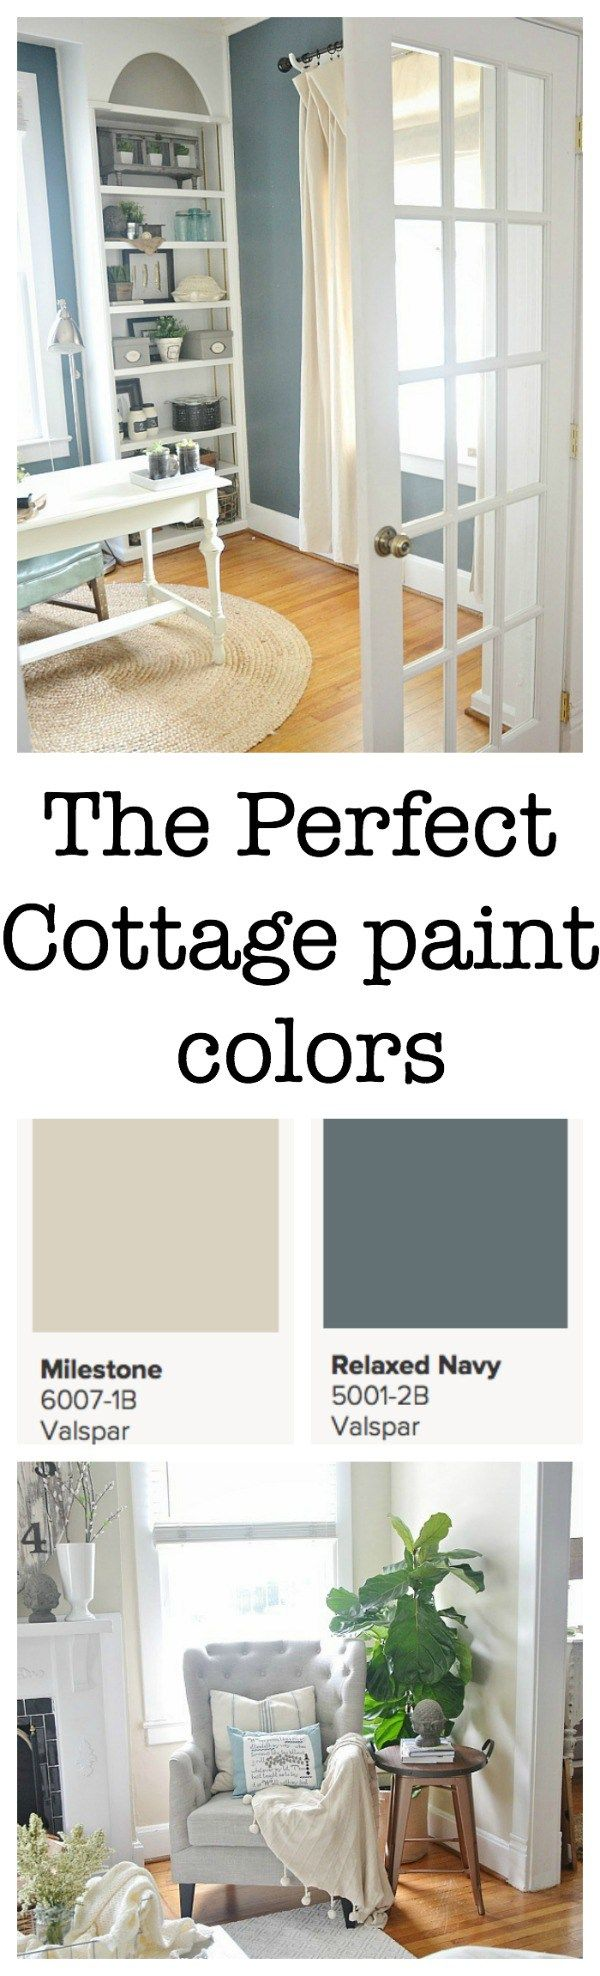 the perfect cottage paint colors lizmarieblog calming office colors